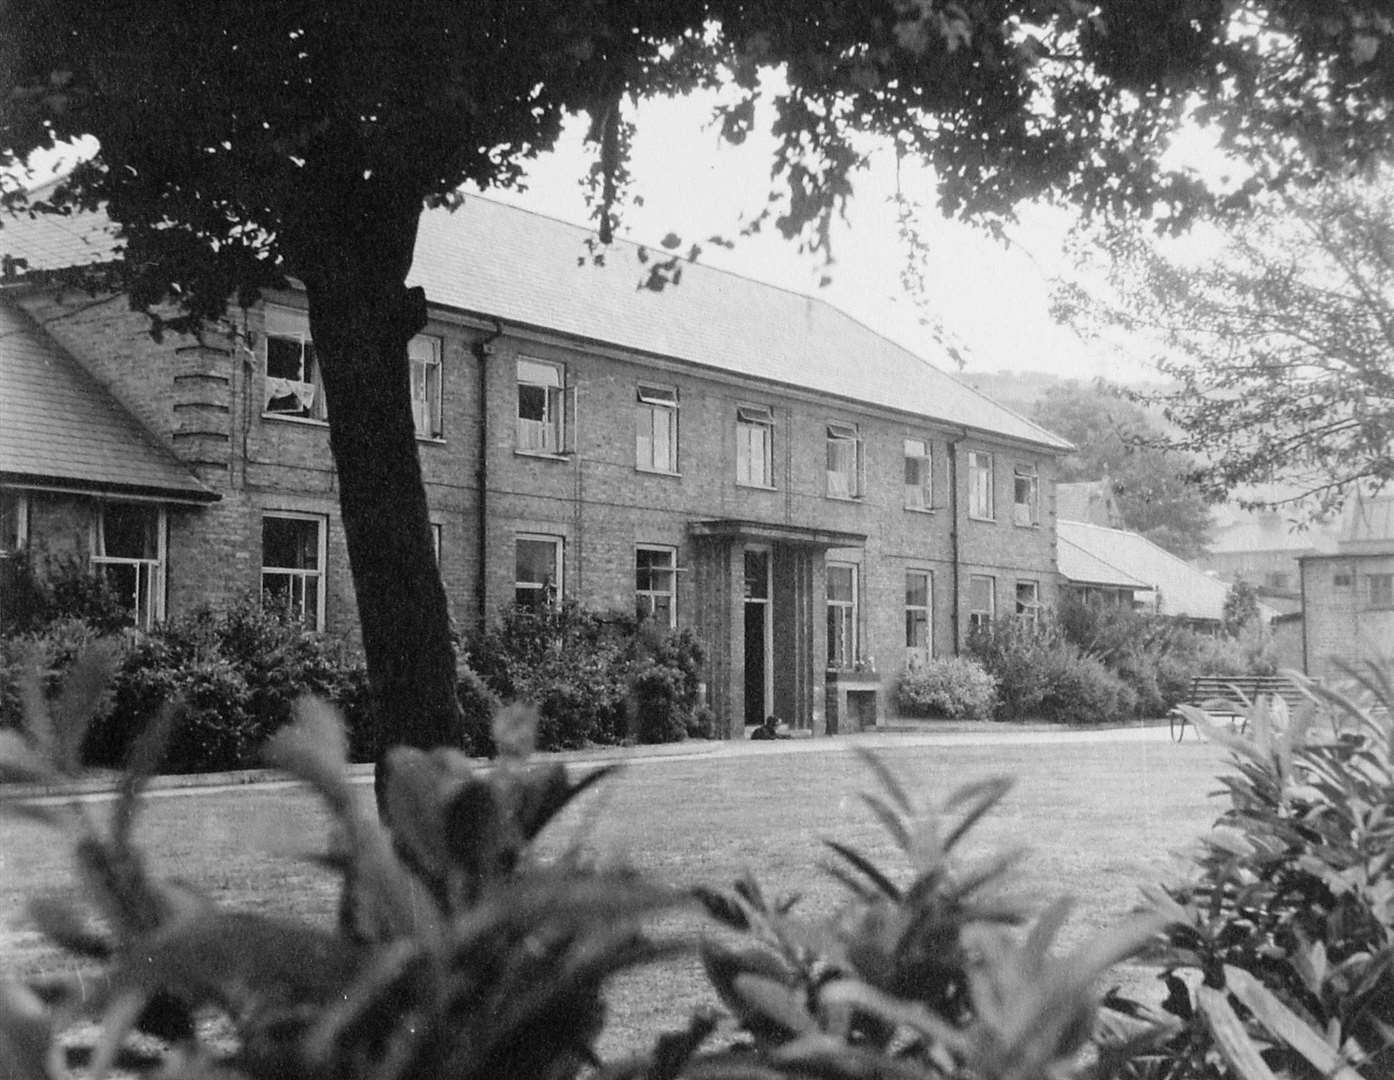 Buckland Hospital circa 1950. Courtesy of Dover Library